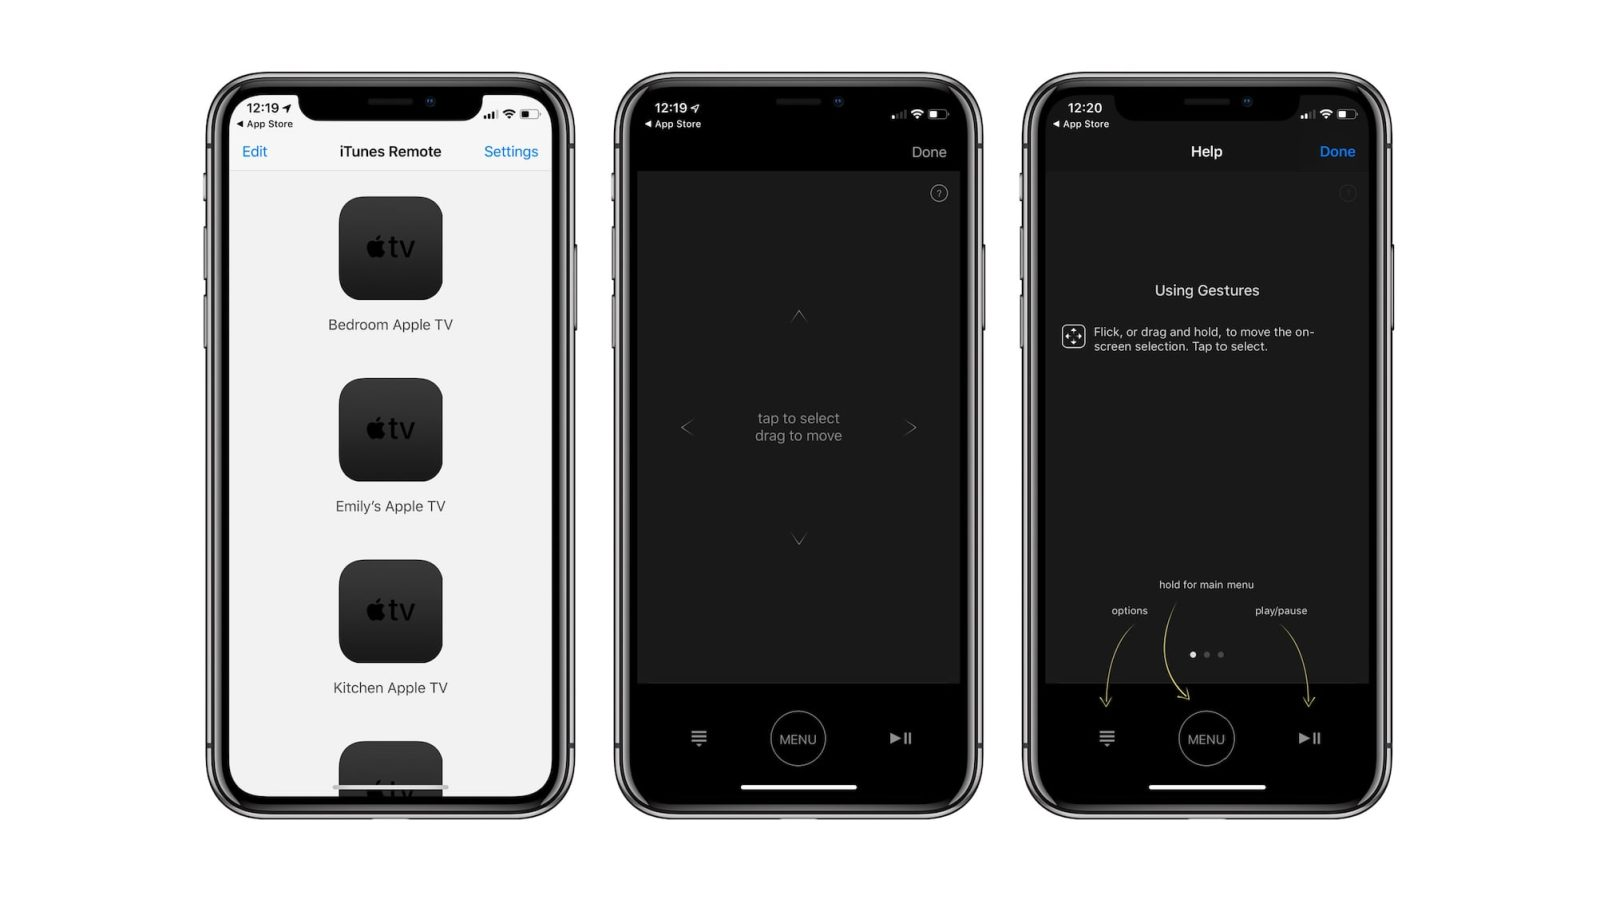 iTunes Remote updated for iPhone X, new icon and design